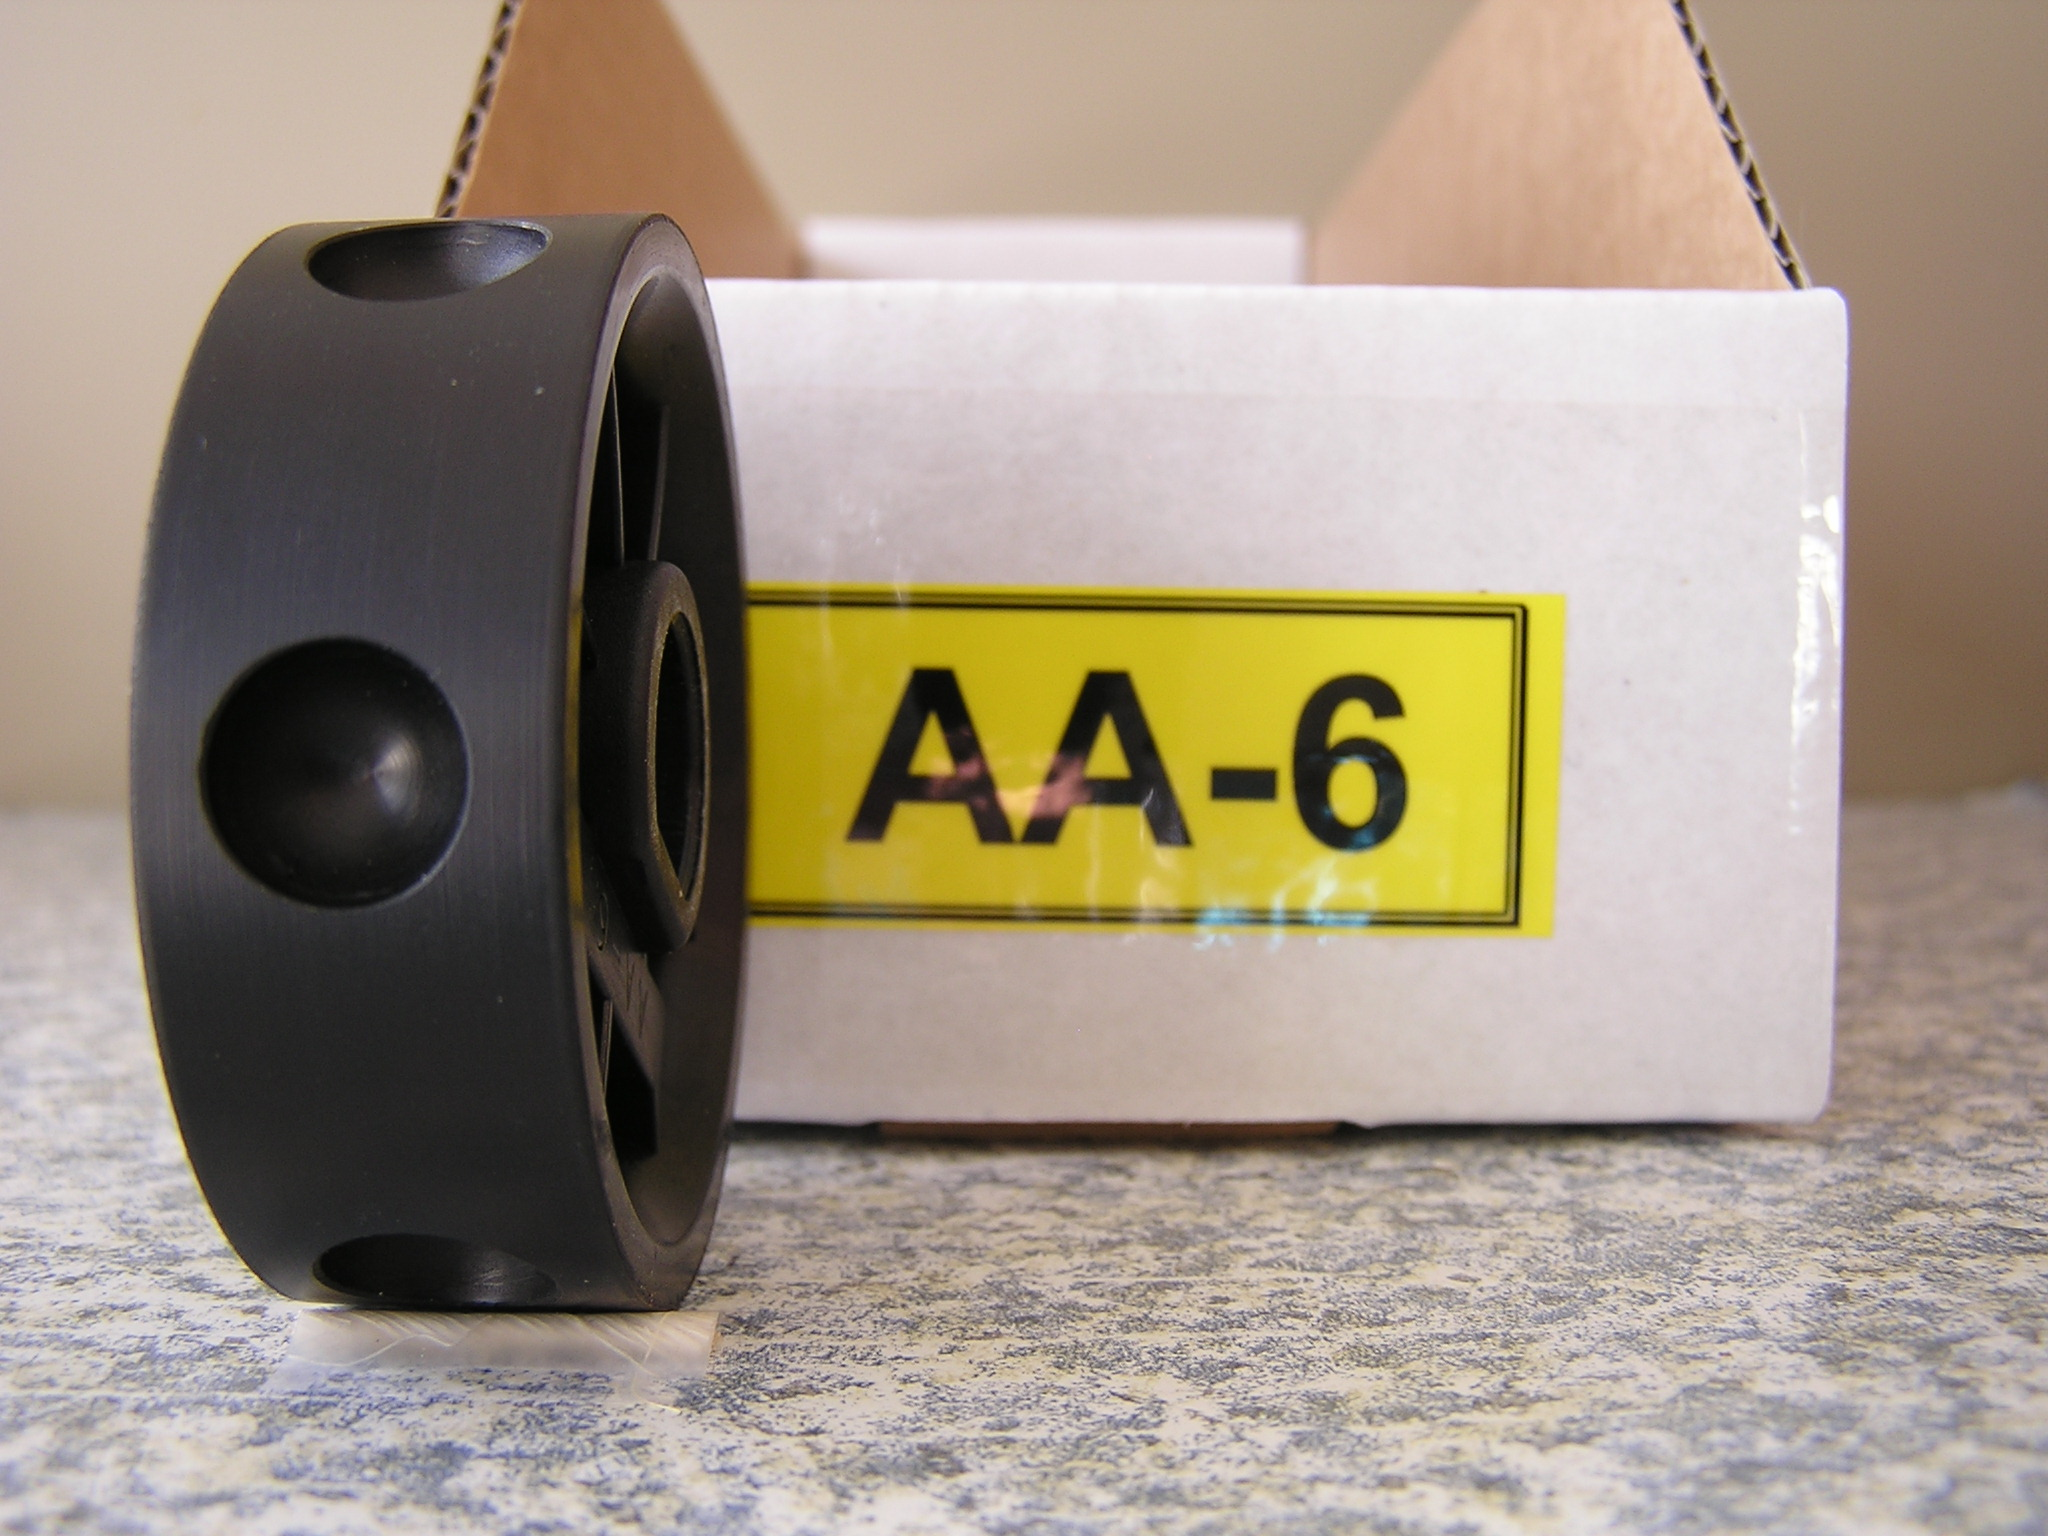 AA-6 Roller for the Jang Seeder, 12 mm w/ 6 slots on the Roller